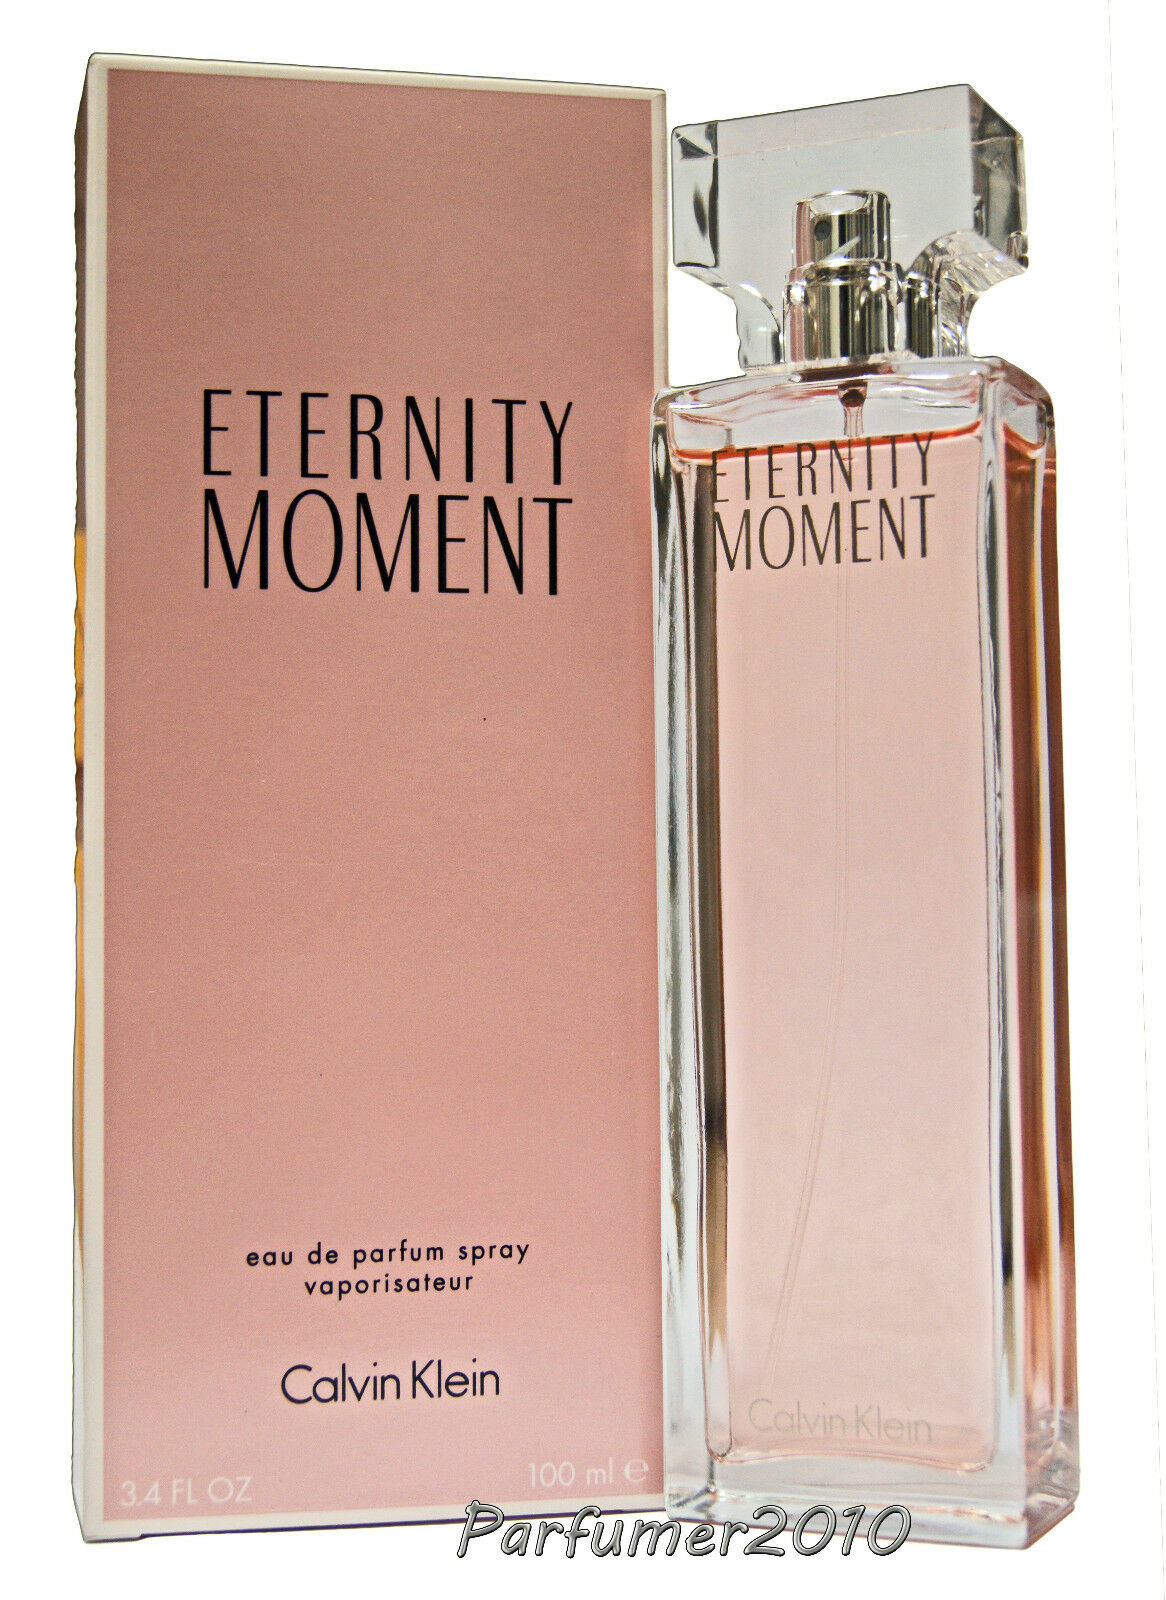 calvin klein eternity moment 100ml edp eau de parfum spray. Black Bedroom Furniture Sets. Home Design Ideas